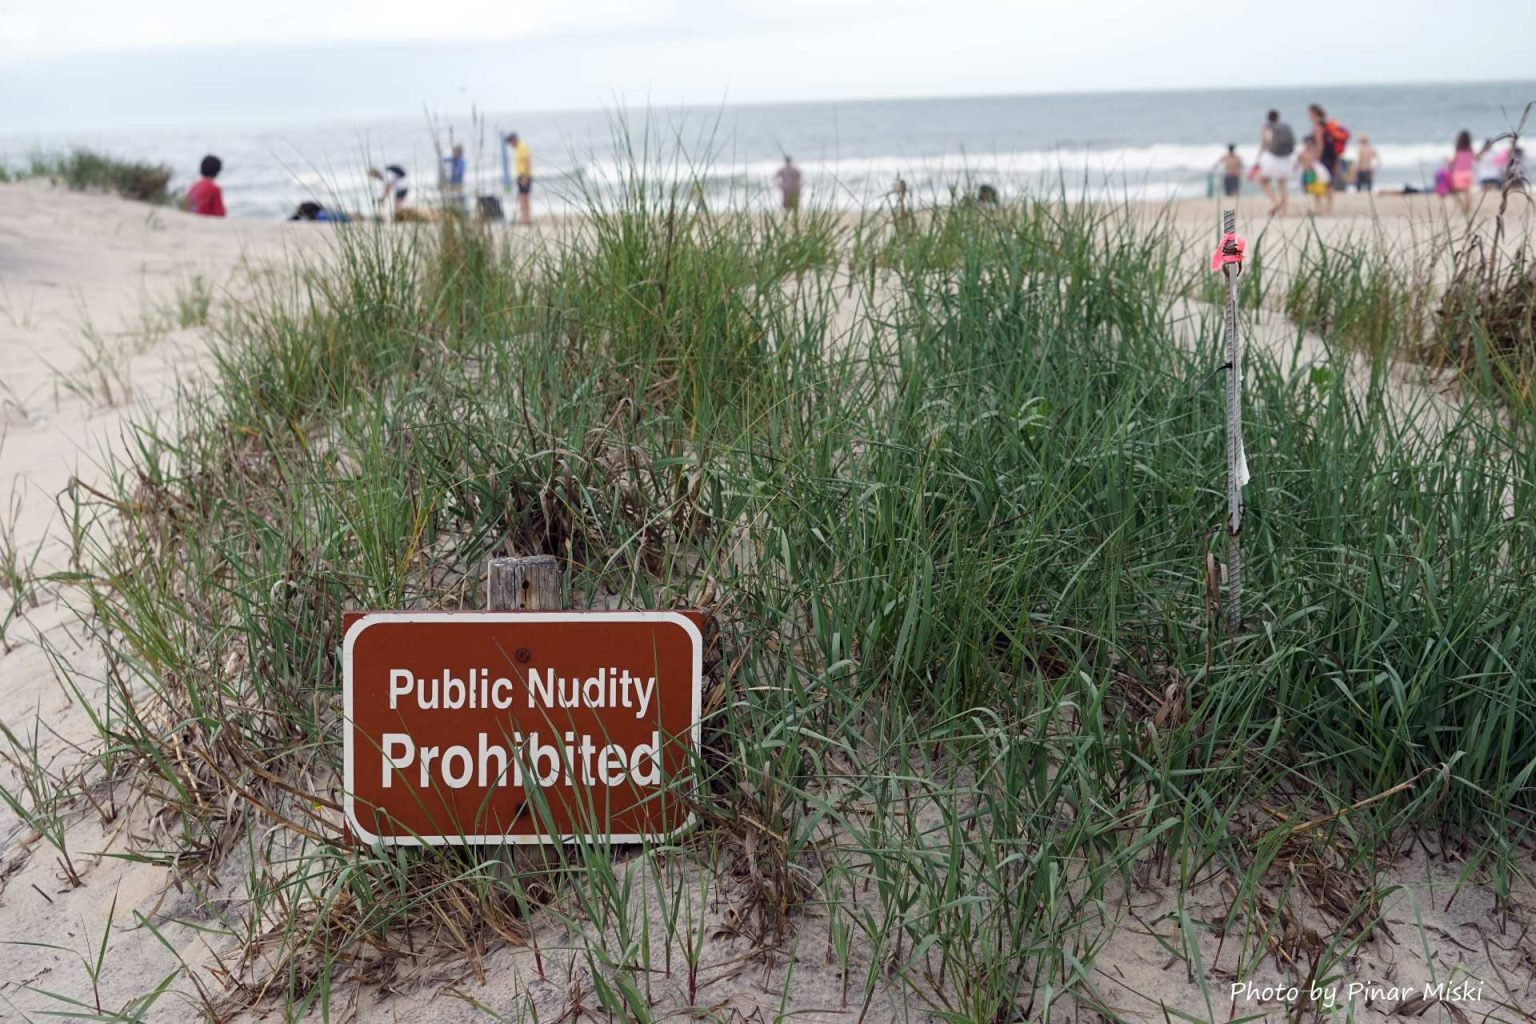 Sorry but you'll have to keep your swimsuit on.  This is Virginia after all.  No Public Nudity.